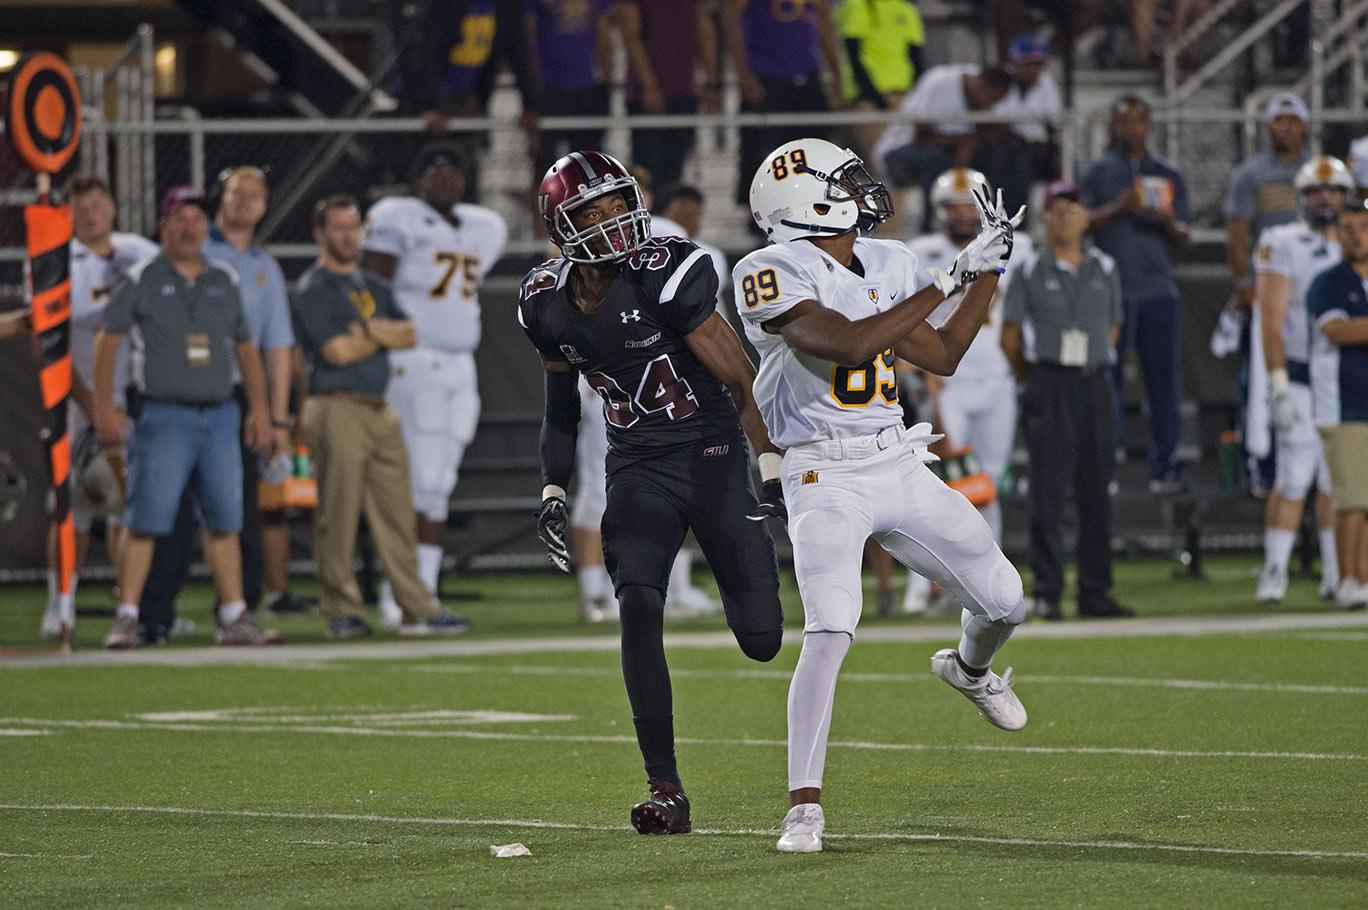 Saluki redshirt freshman cornerback Kerwin McElvaney runs down the field near Racer freshman wide receiver Jonathan Moss during SIU's 50-17 win against Murray State on Saturday, Sept. 17, 2016, at Saluki Stadium. (Jacob Wiegand | @JacobWiegand_DE)